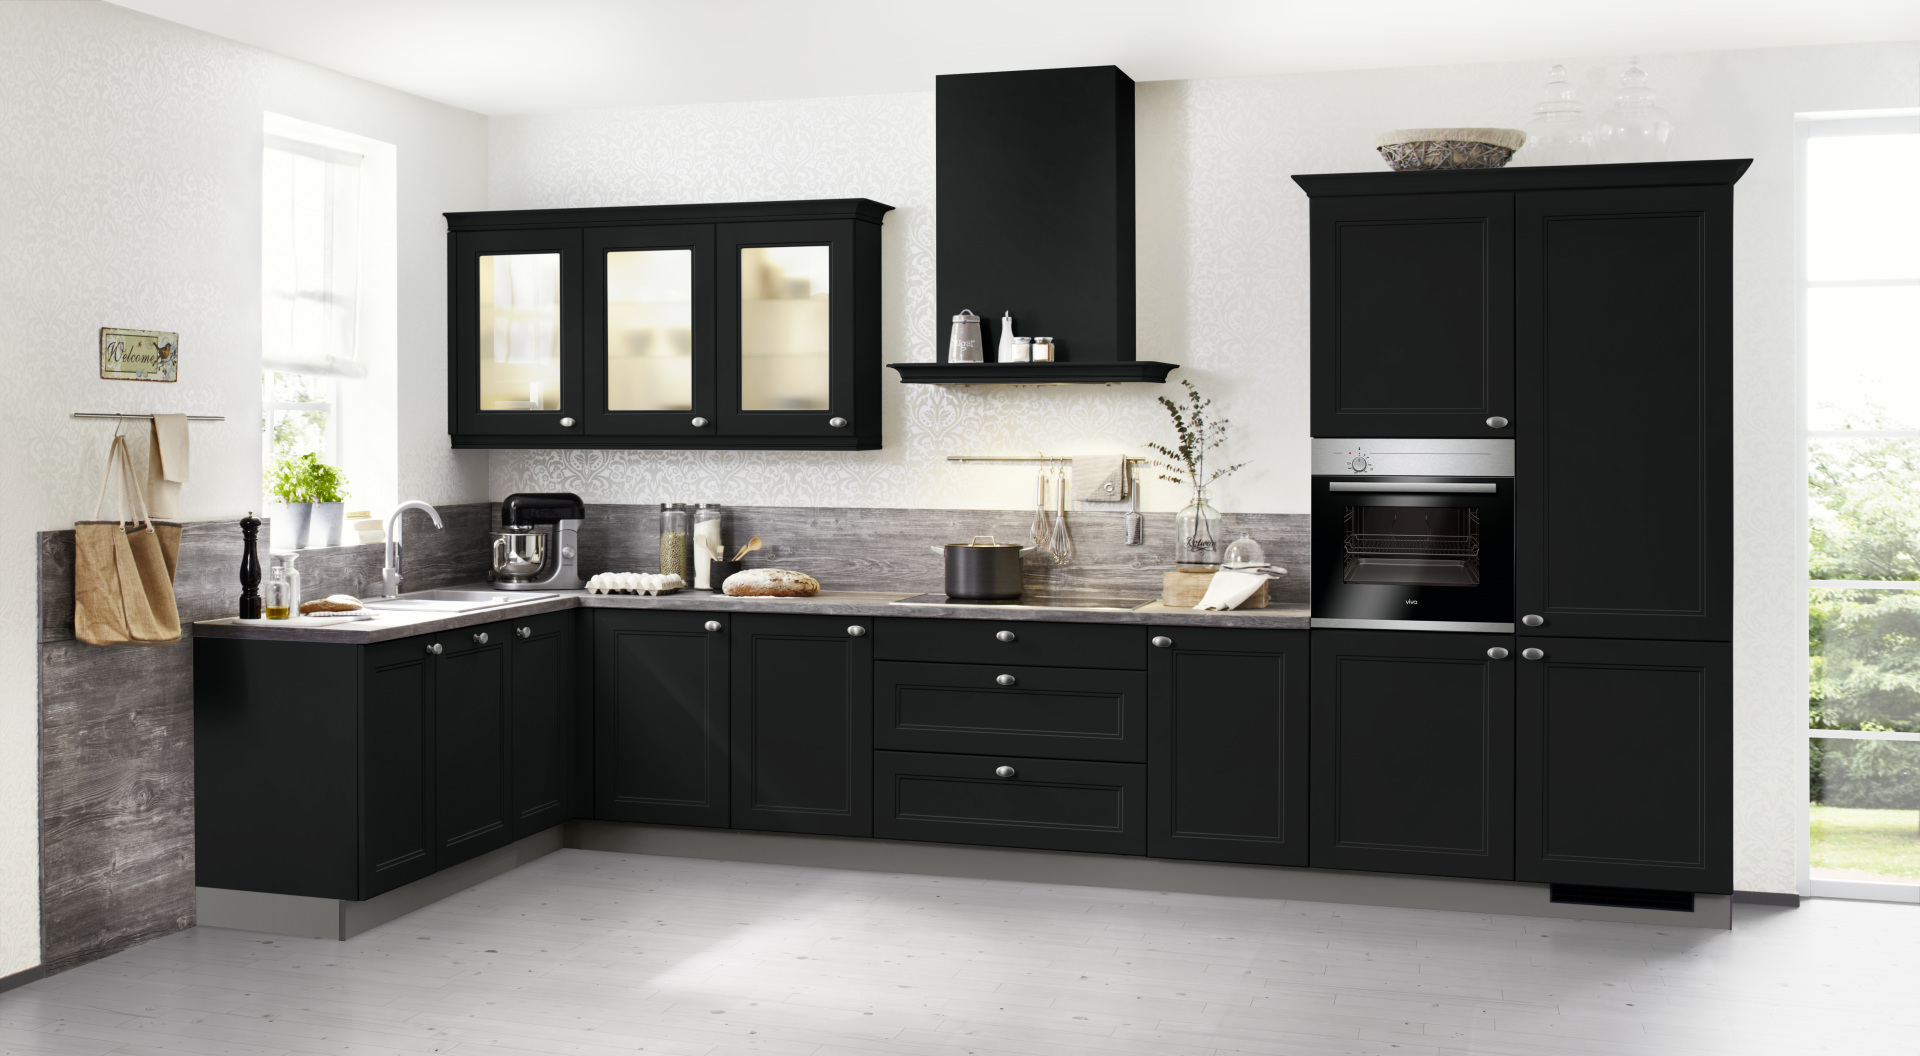 nolte k che windsor schwarz lack softmatt k chenexperte hannover. Black Bedroom Furniture Sets. Home Design Ideas